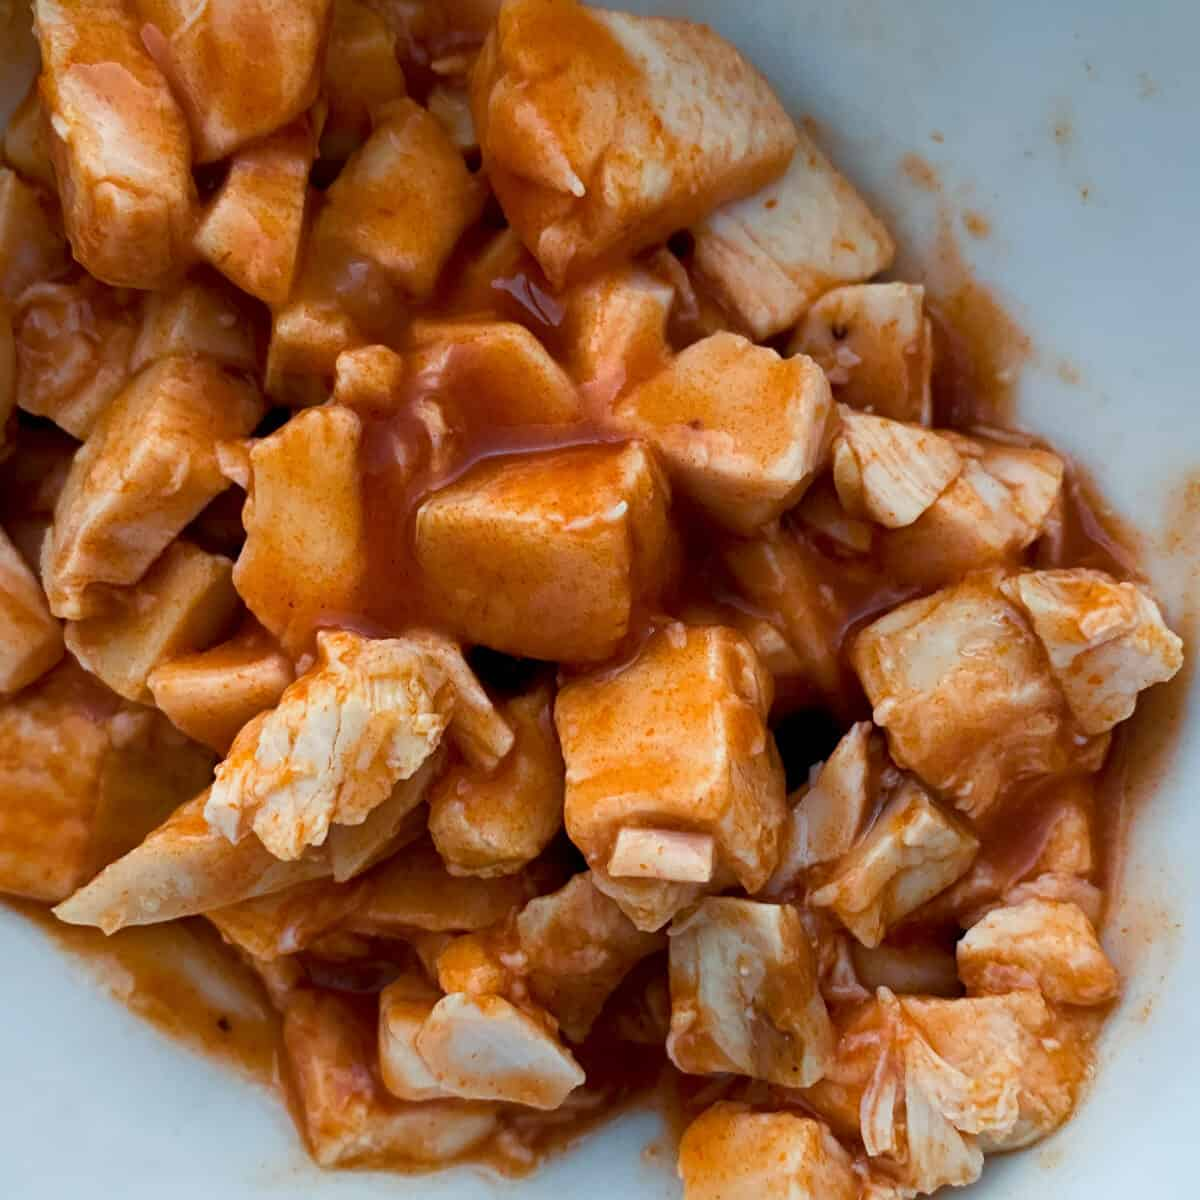 close up view of cubed chicken tossed with hot sauce